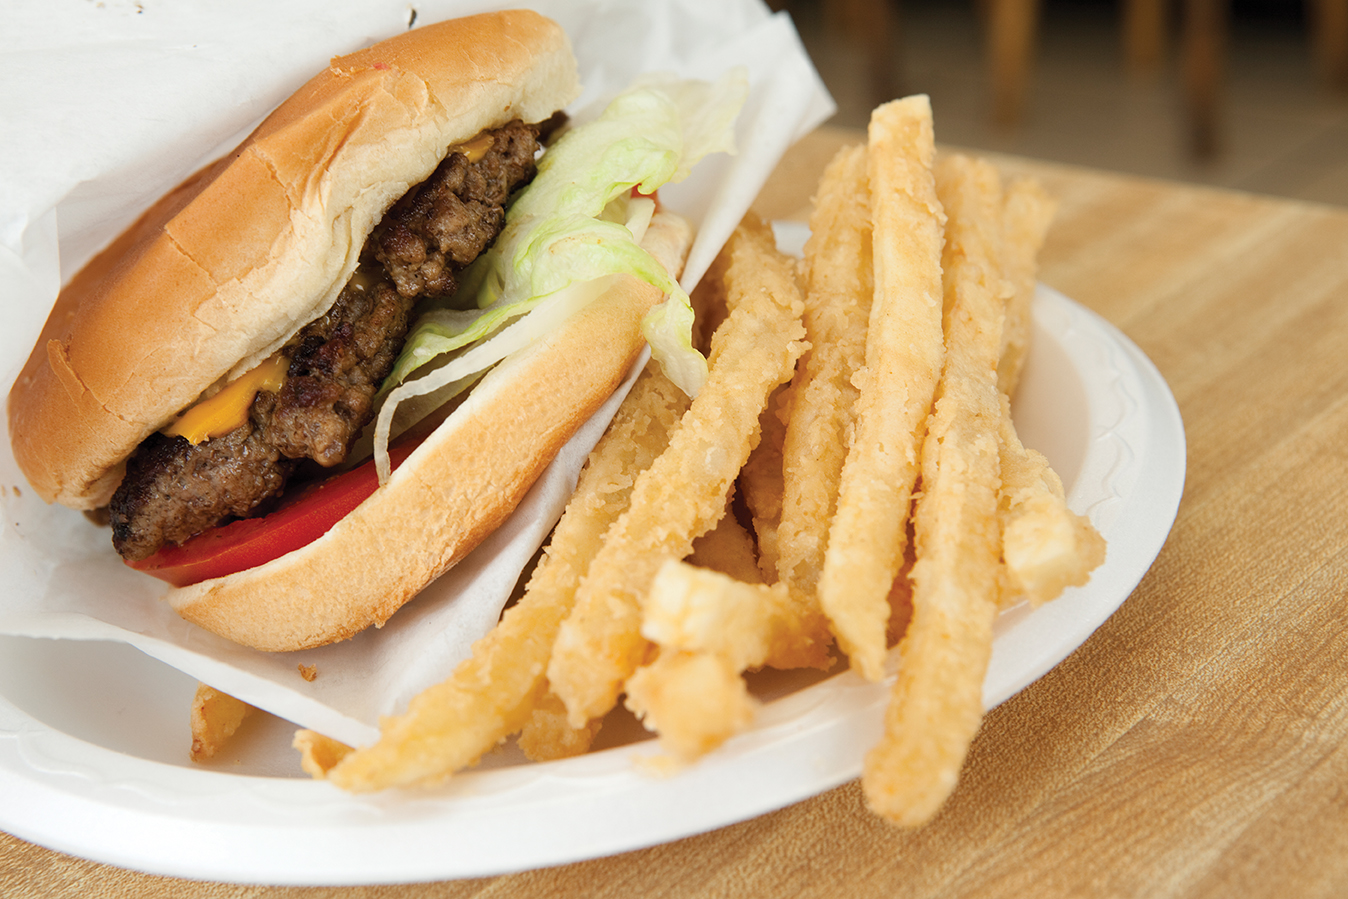 Breaded and cooked in lard, the fries at the Dixie Drive-In seem more Southern than French.